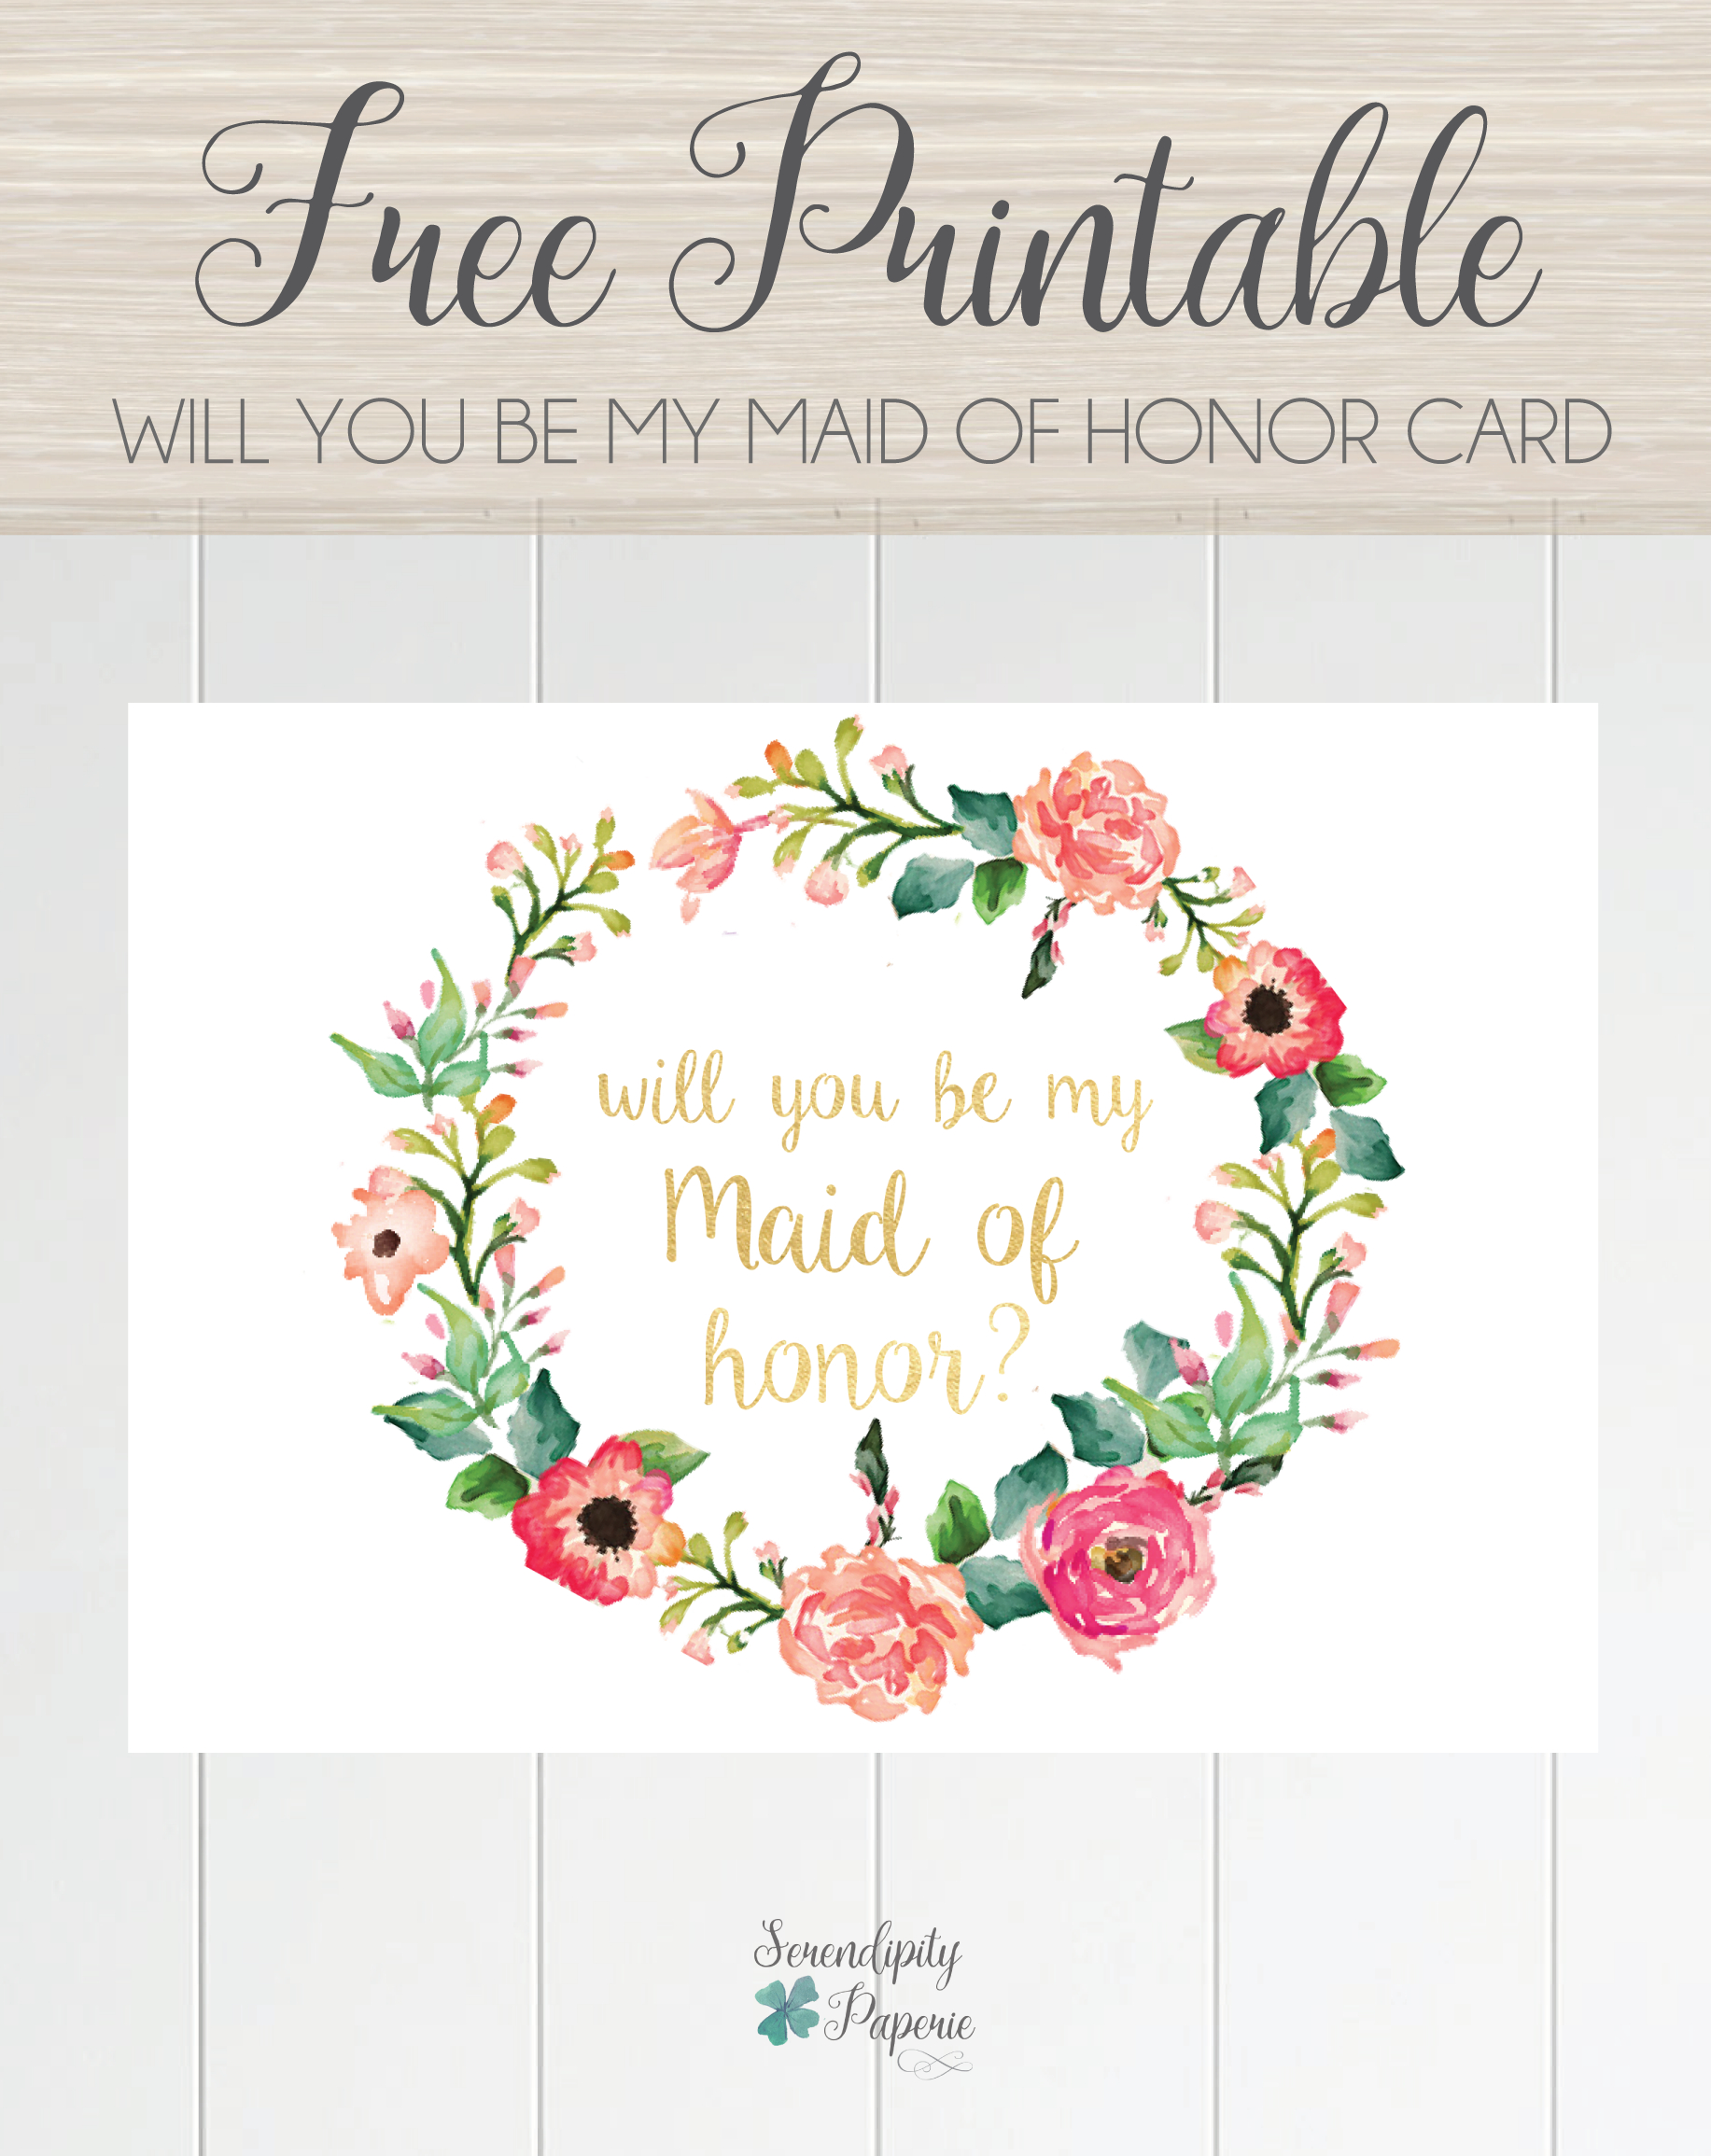 Free Printable Will You Be My Maid Of Honor Card, Floral Wreath - Free Printable Bridesmaid Proposal